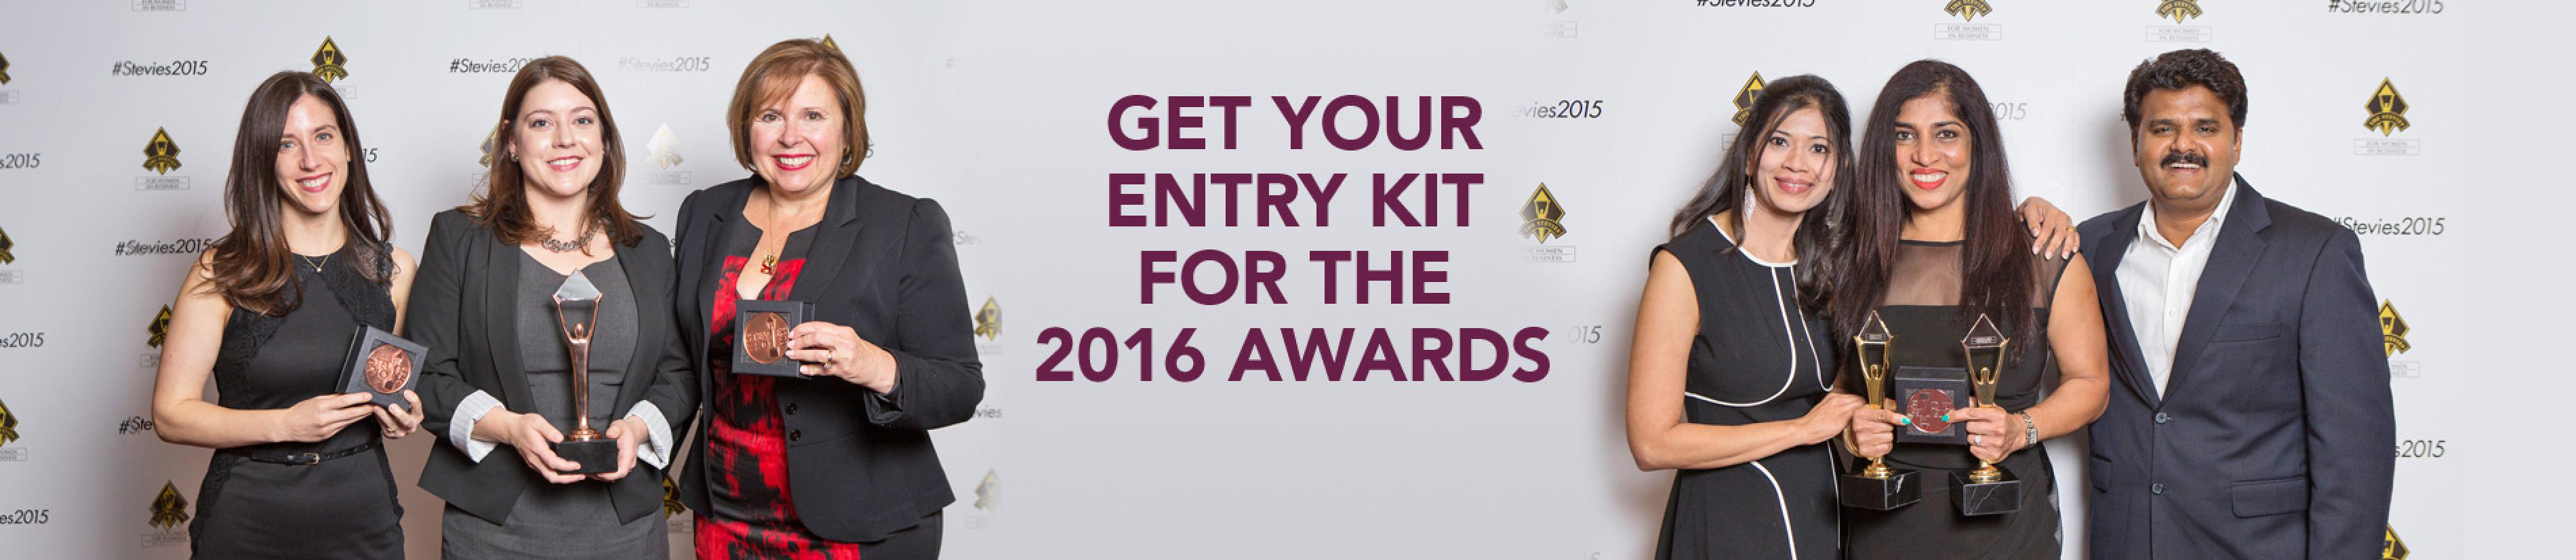 Get Entry Your Entry Kit